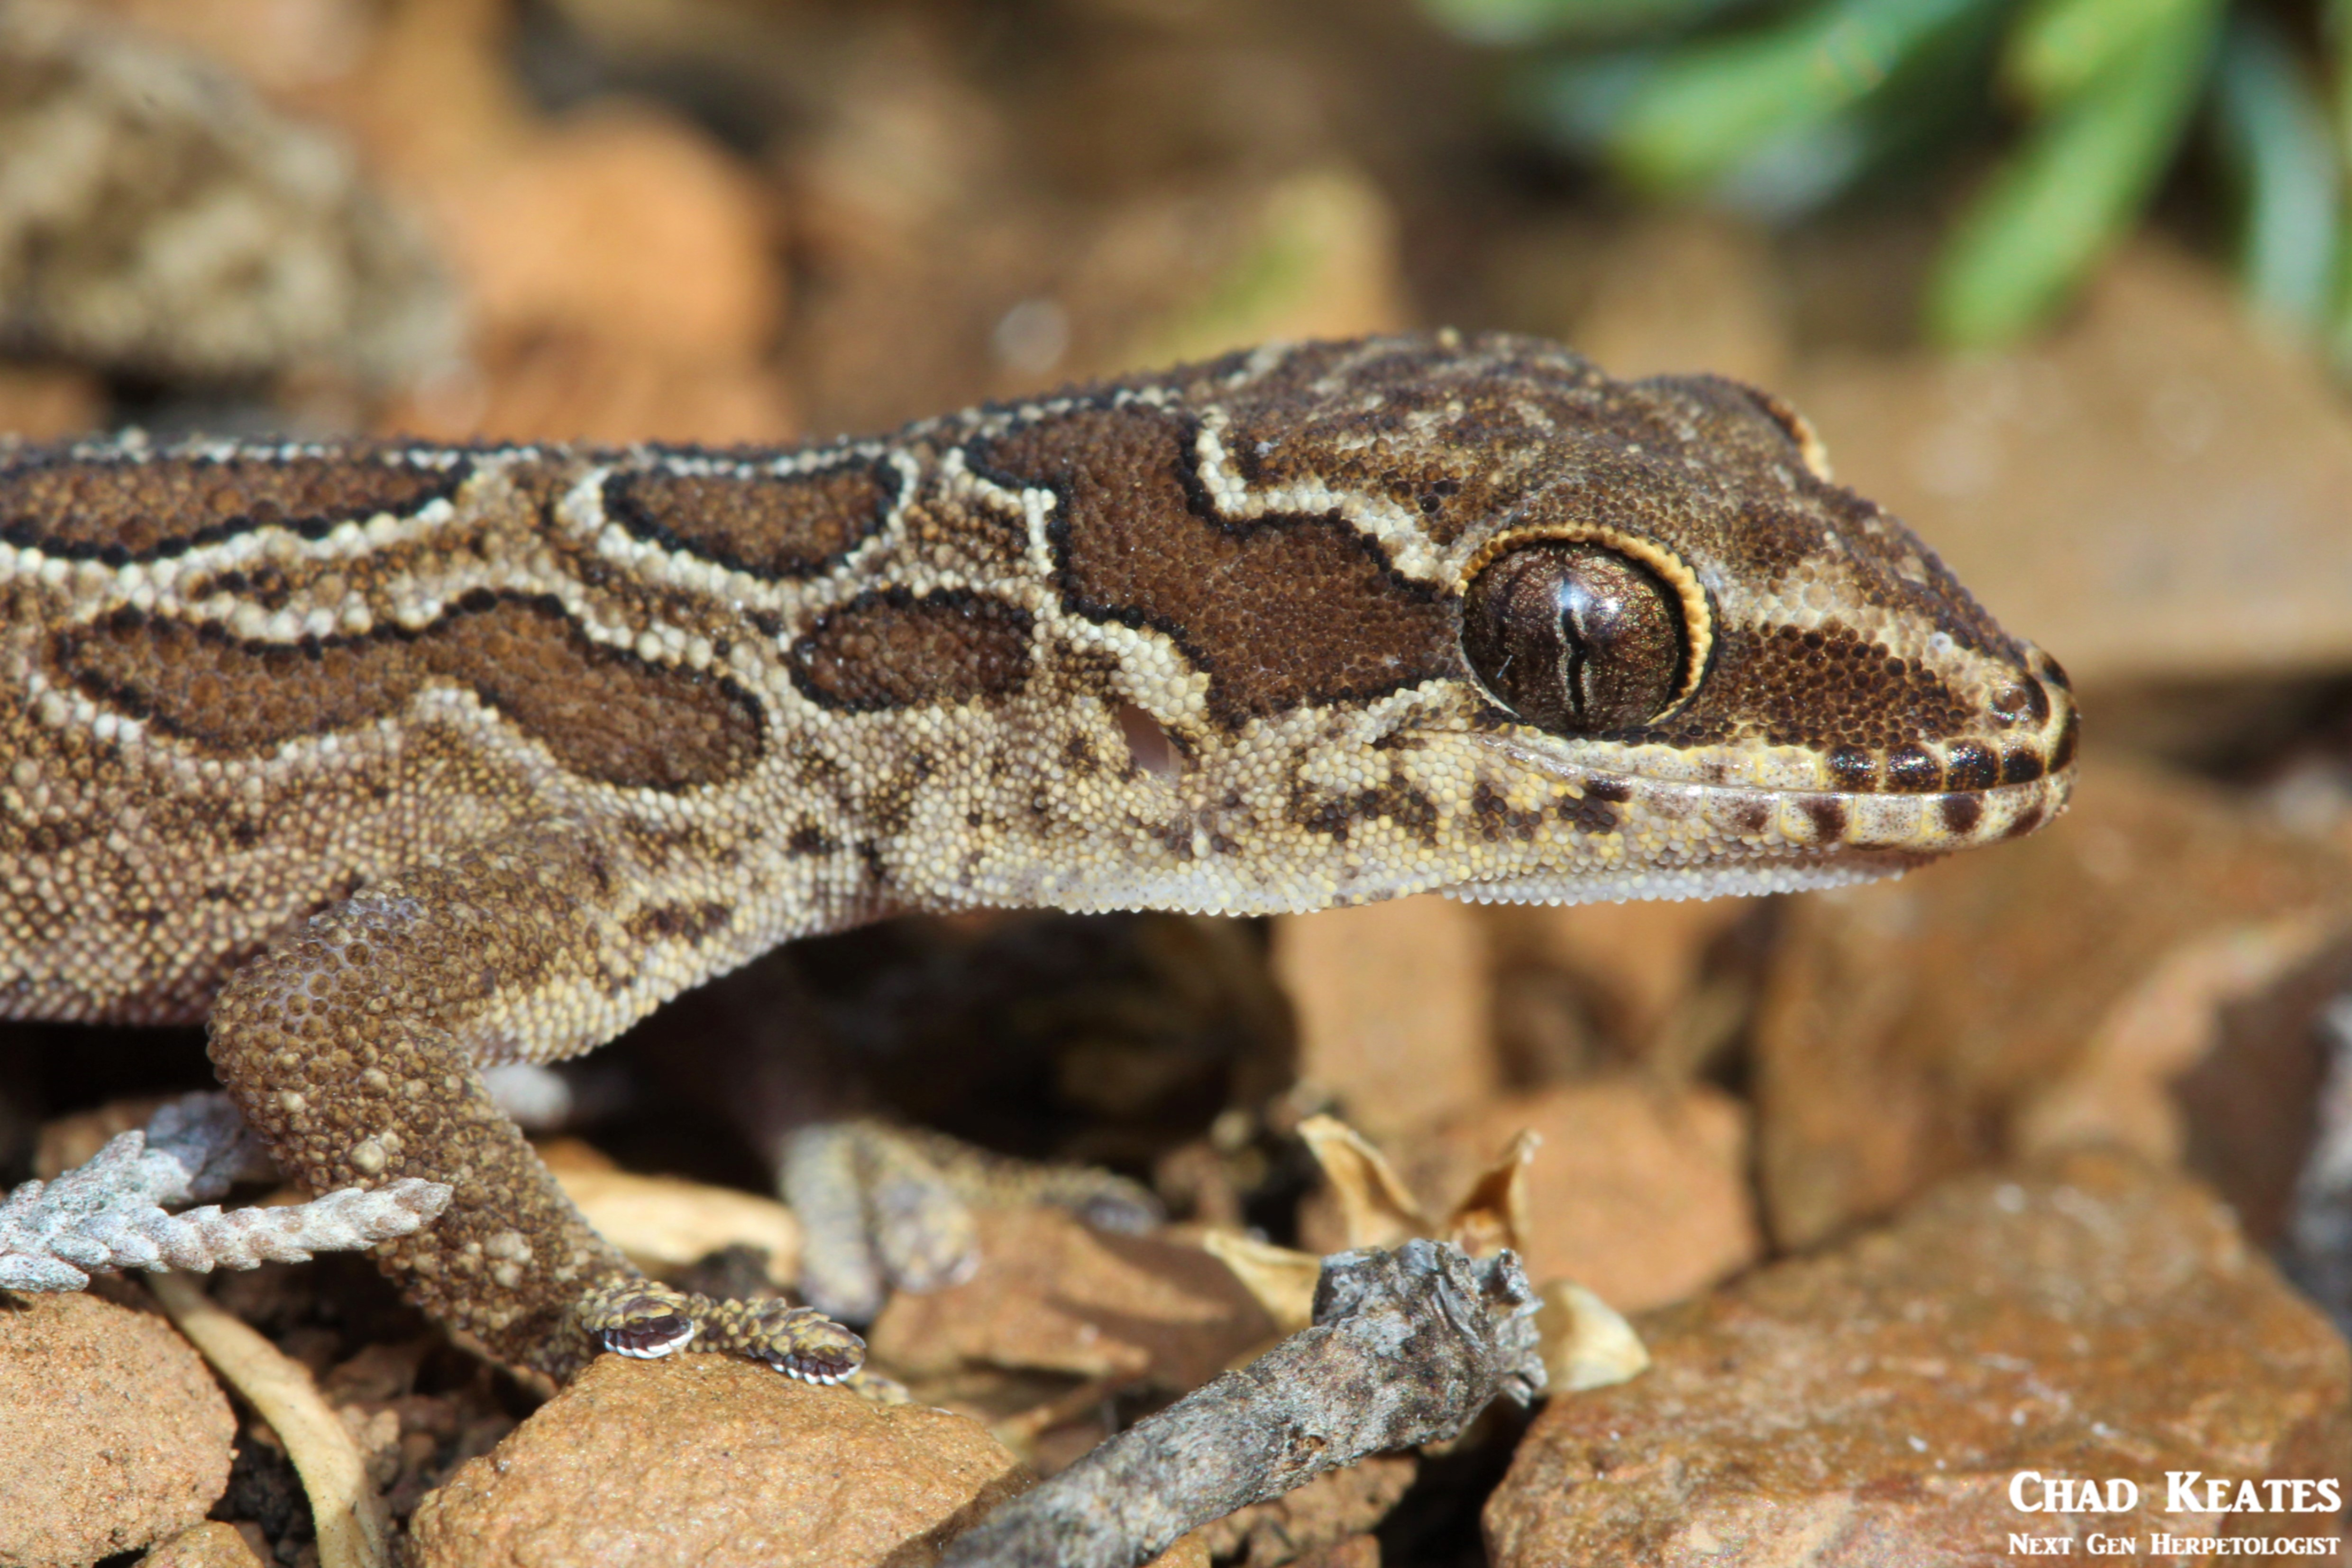 Pachydactylus_oculatus_Golden_Spotted_Thick_Toed_Gecko_Chad_Keates (2)